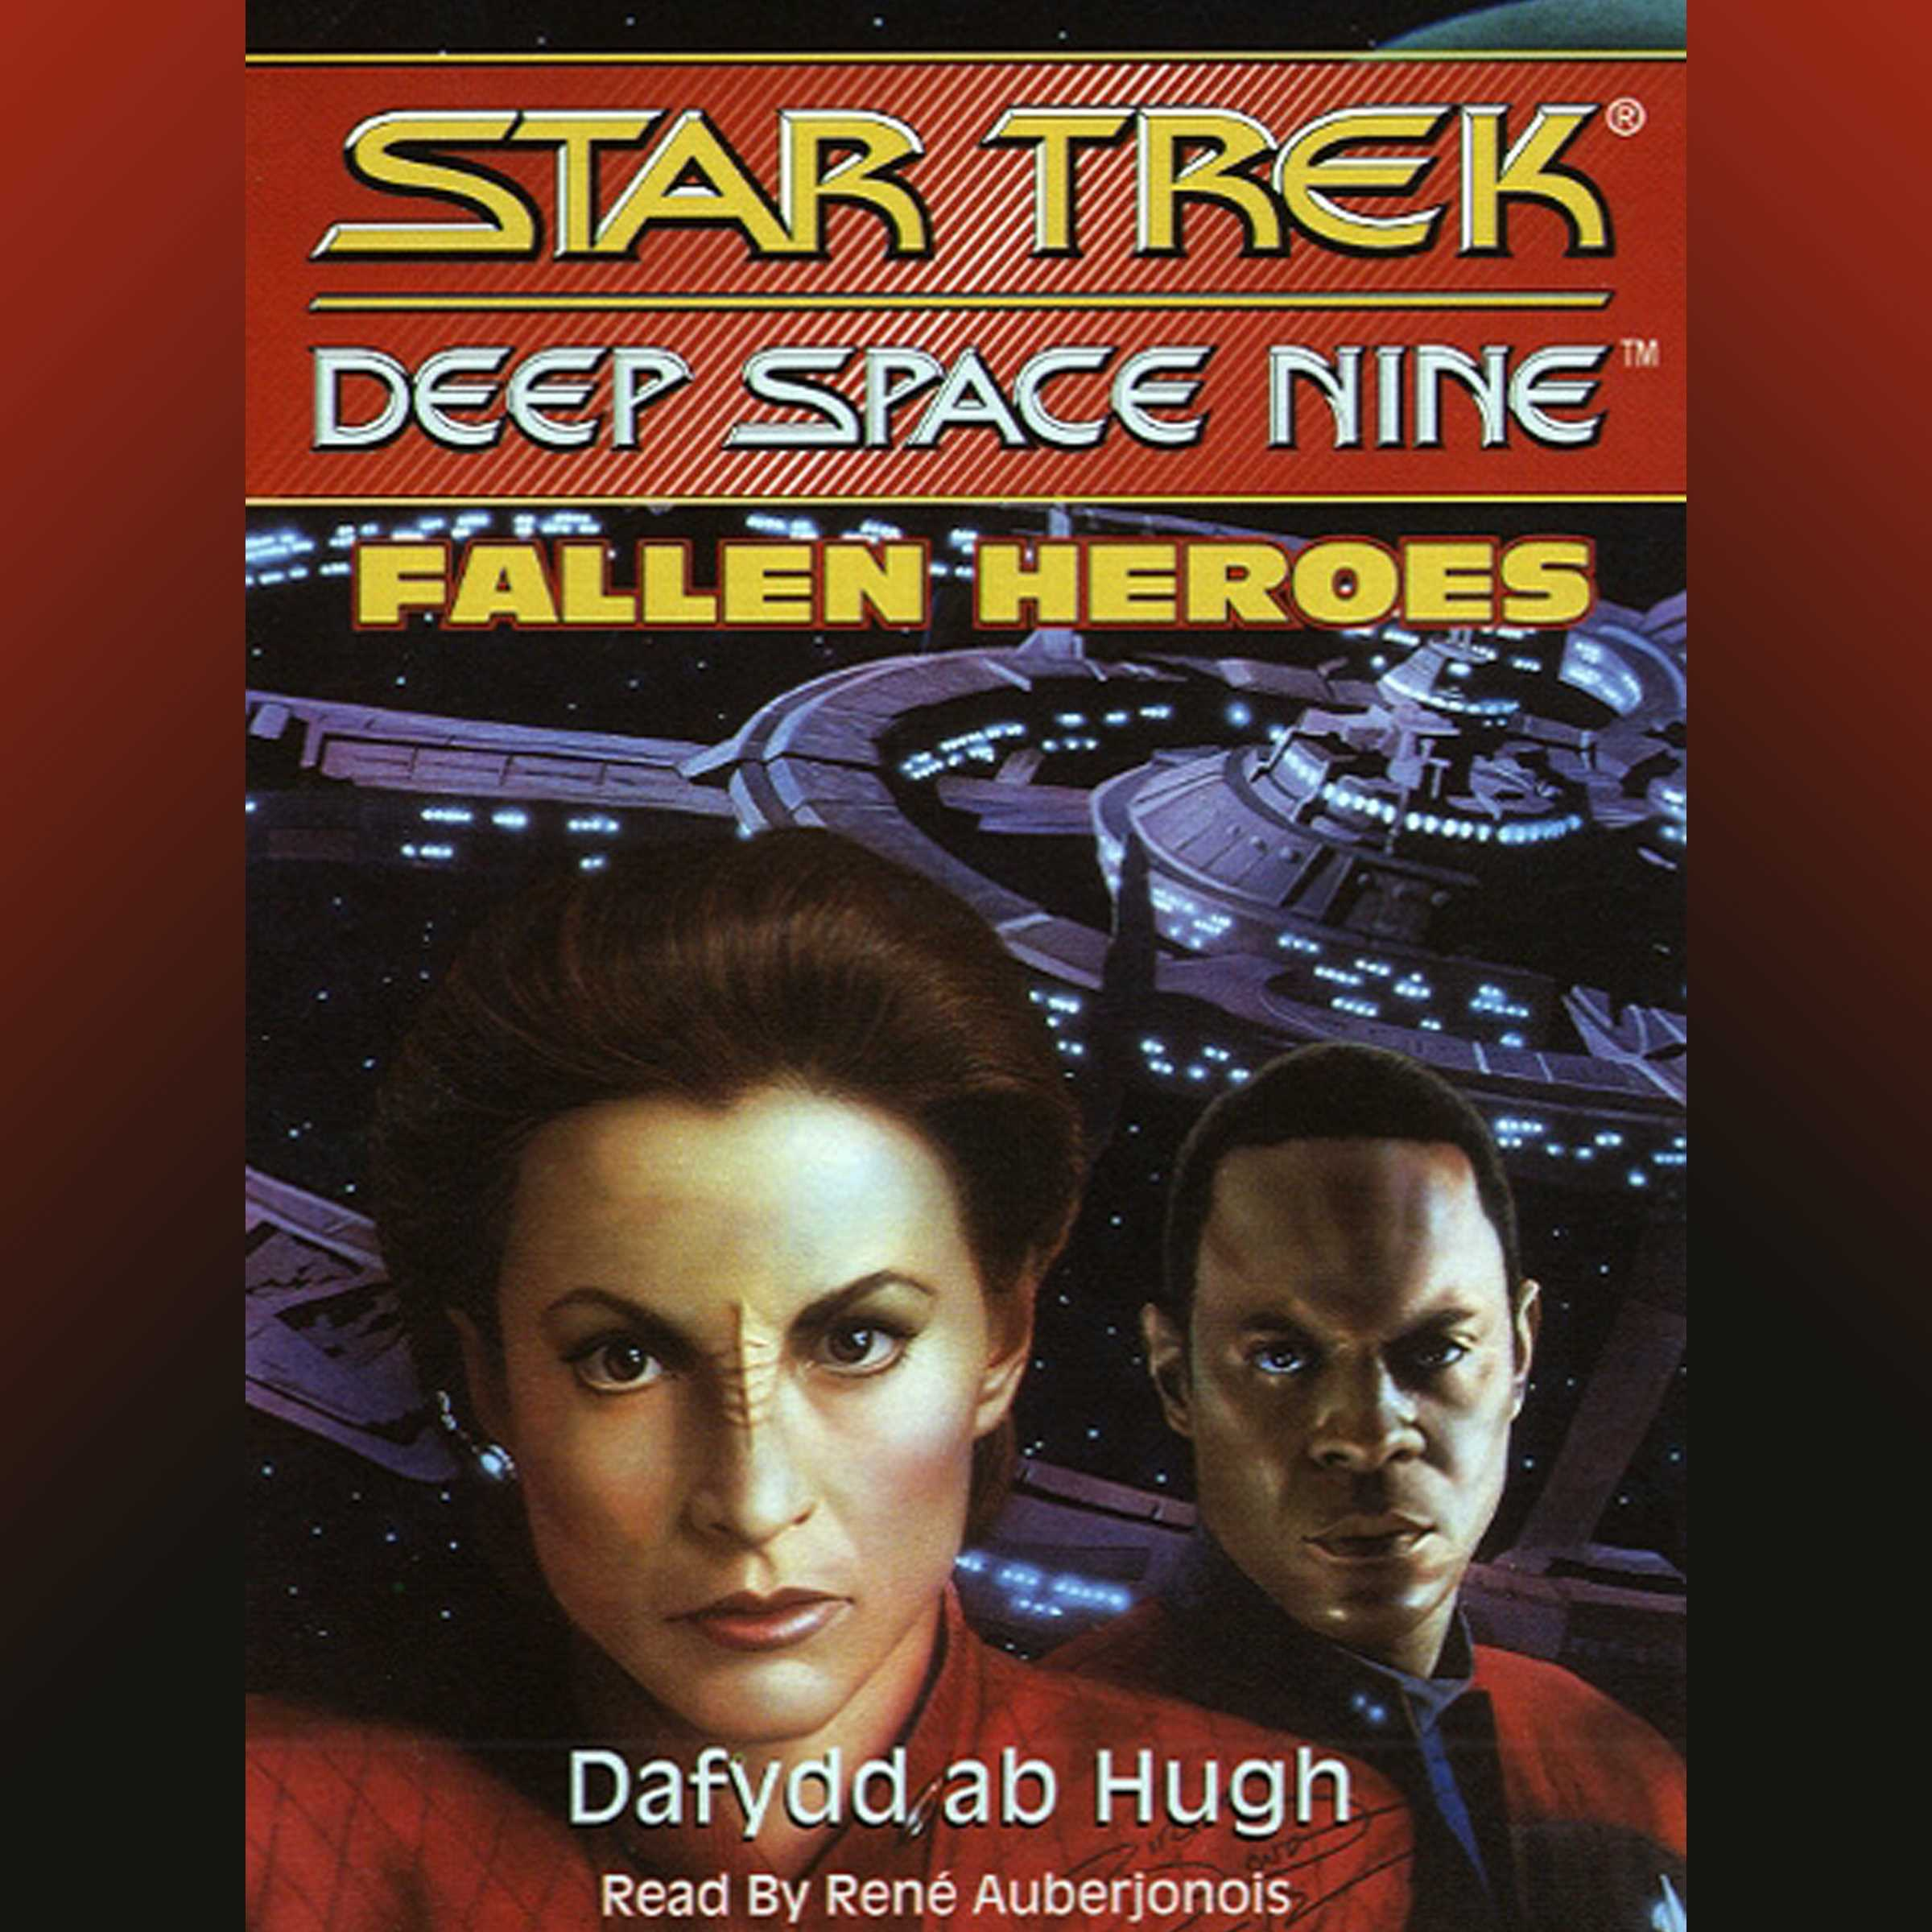 Star trek deep space nine fallen heroes 9780743546232 hr